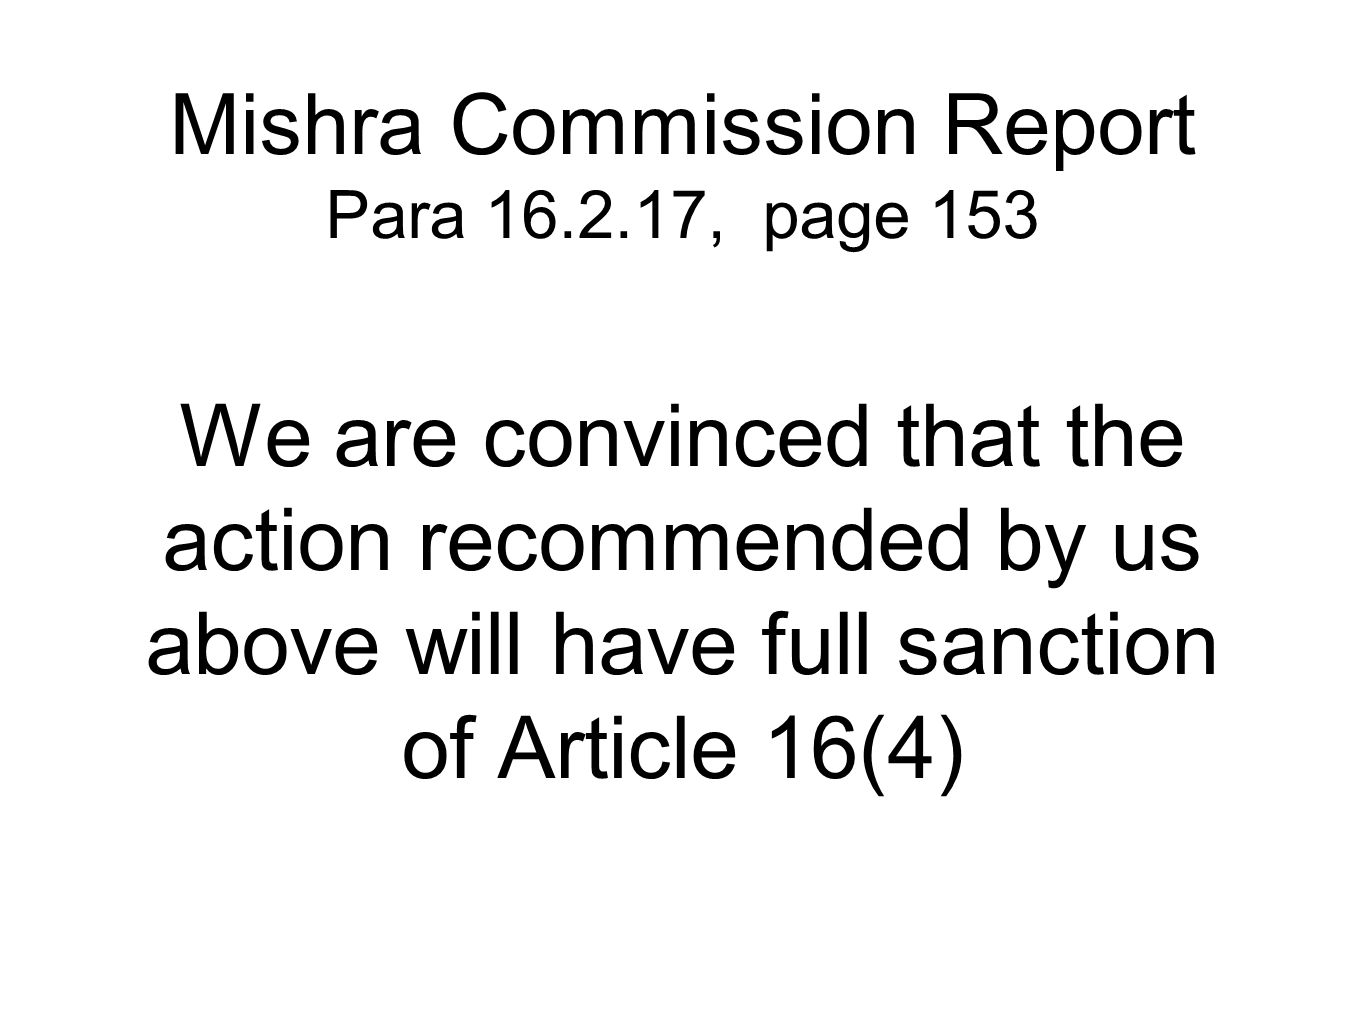 Mishra Commission Report Para 16.2.17, page 153 We are convinced that the action recommended by us above will have full sanction of Article 16(4)